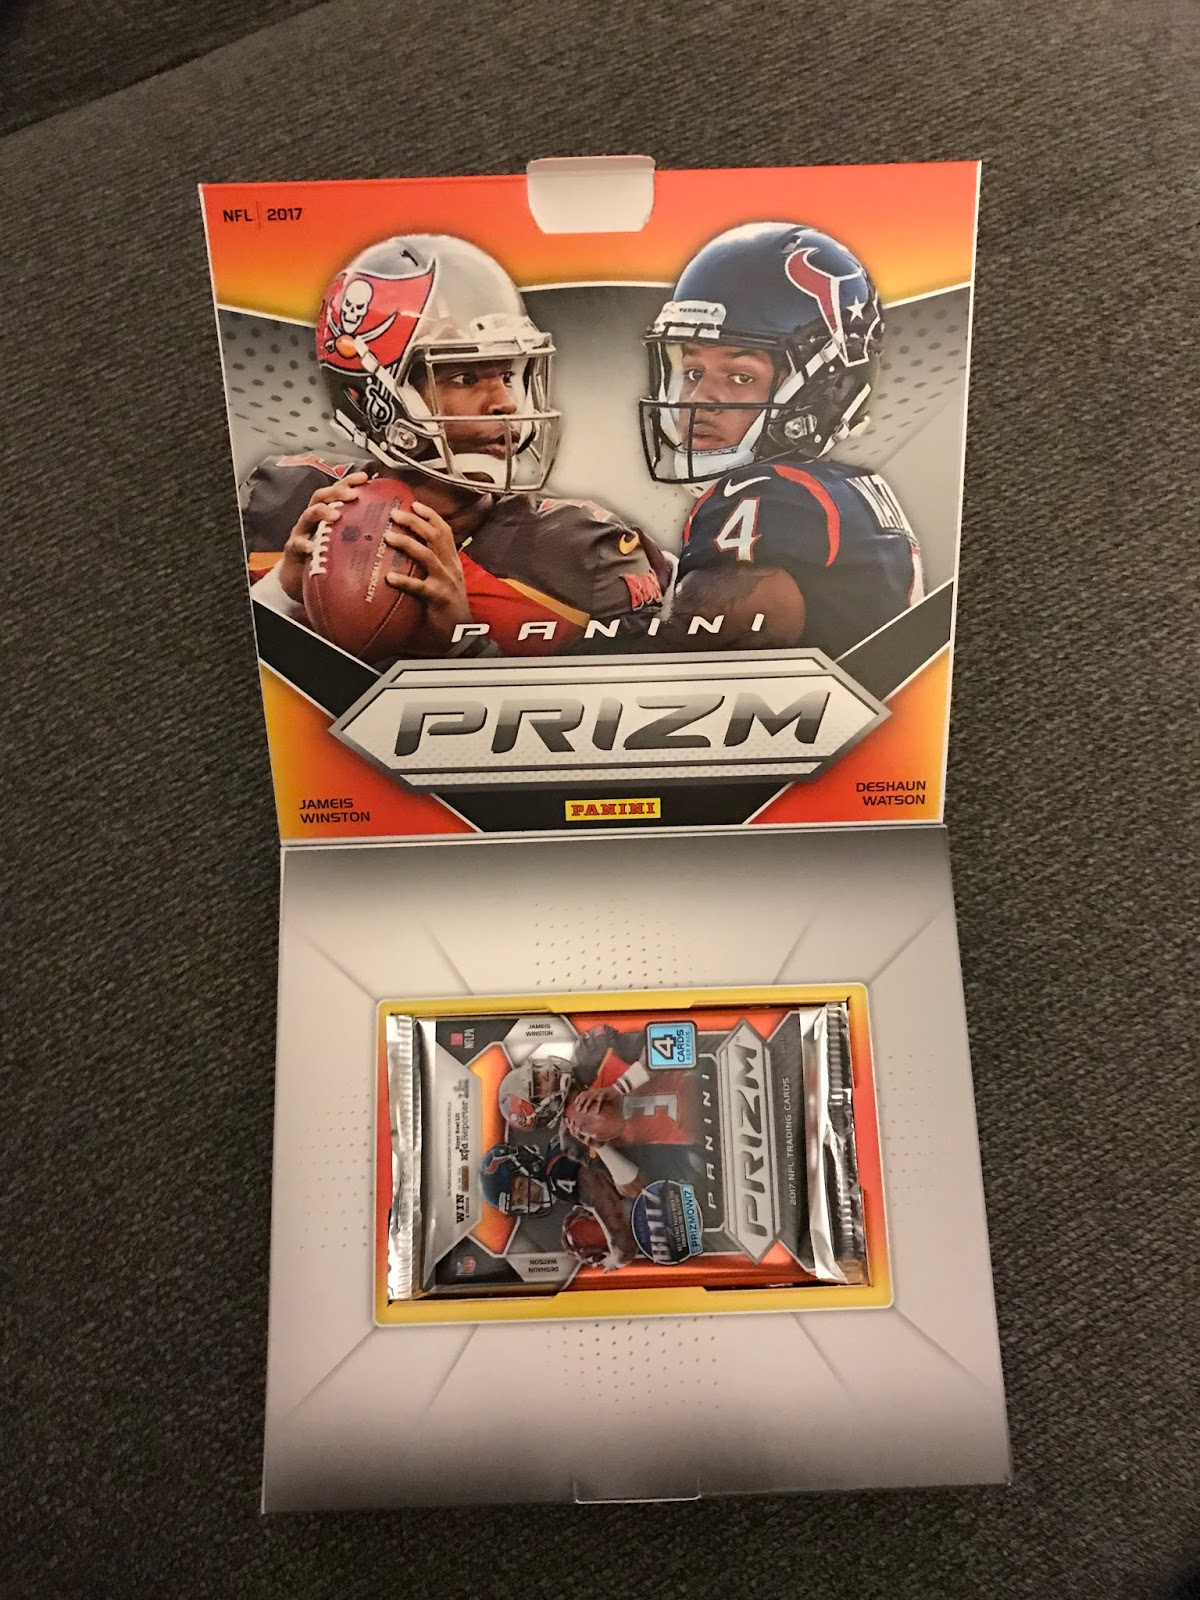 67a71ed4775 Ripping Retail - 2017 Panini Prizm Football - Target Exclusive ...